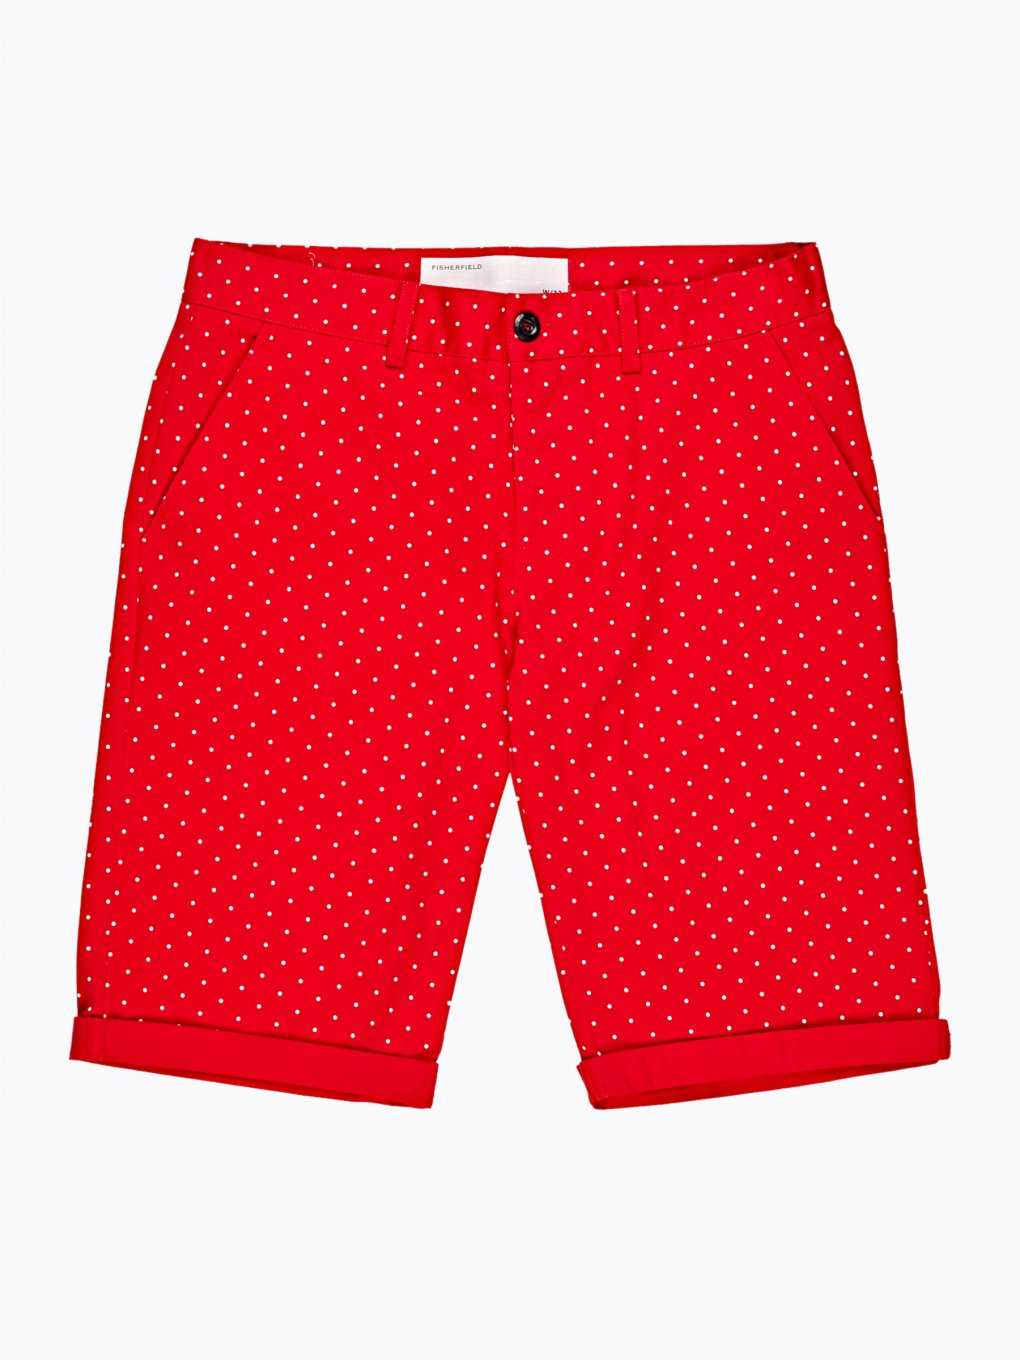 Polka dot print stretch shorts